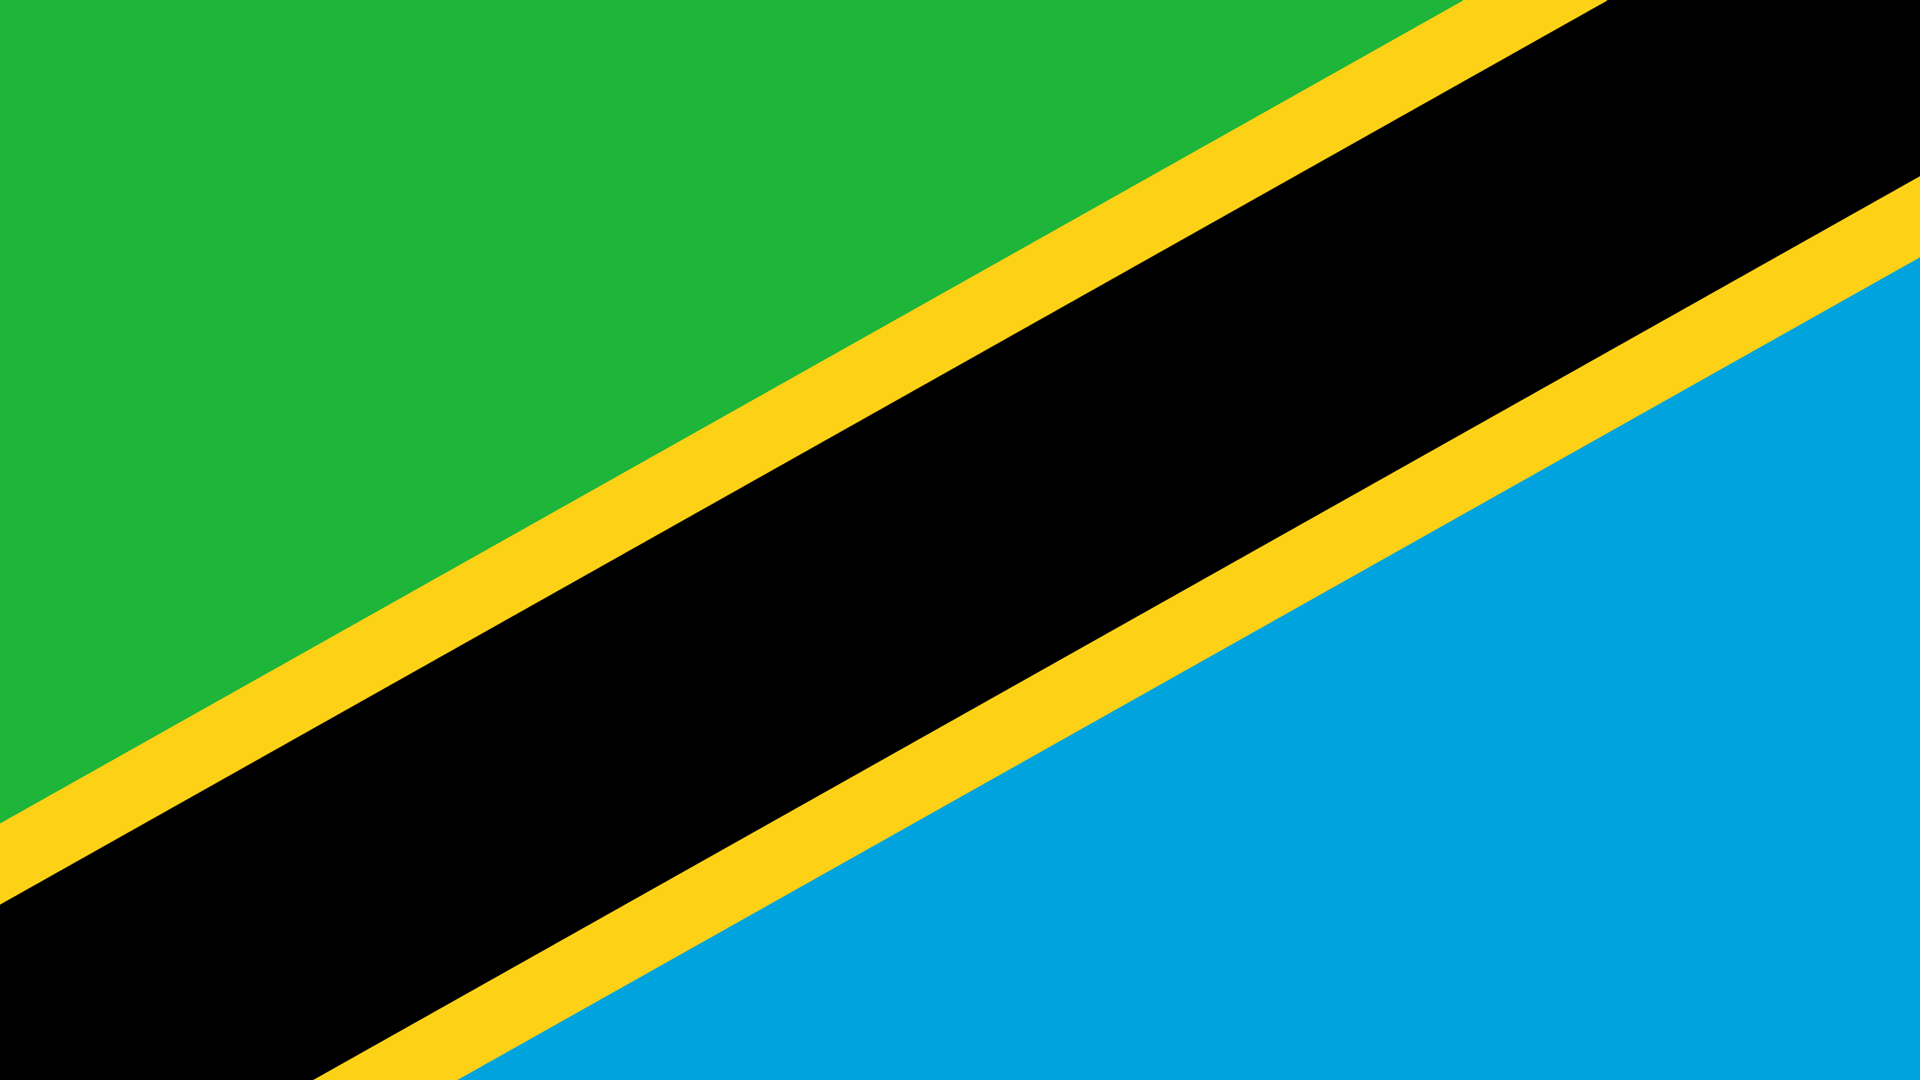 tanzania flag wallpaper Africa OnTheRise 1920x1080